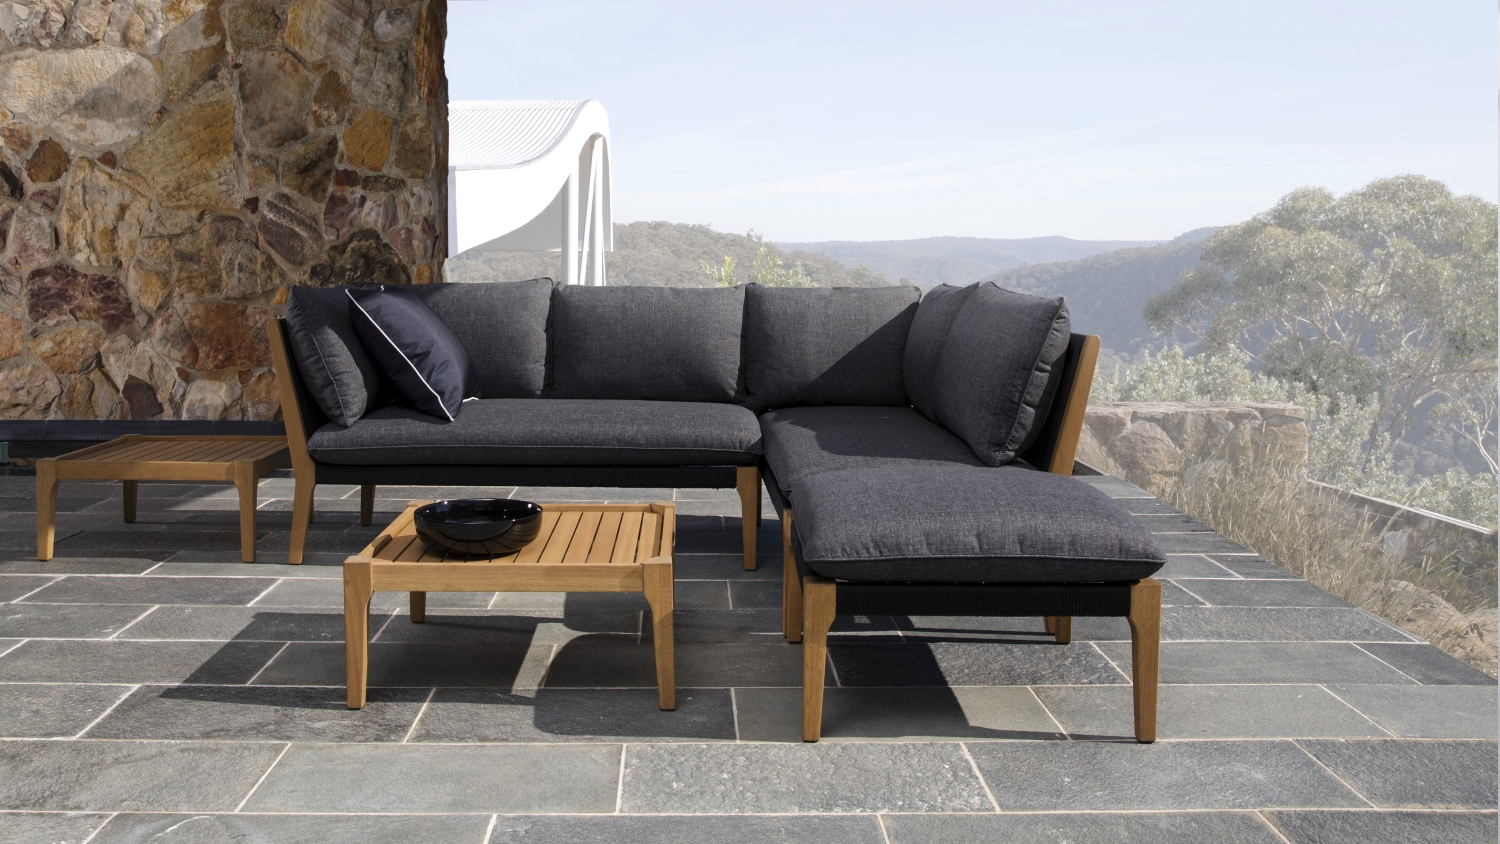 Outdoor Lounge Sofa Koa Outdoor Modular Sofa Domayne